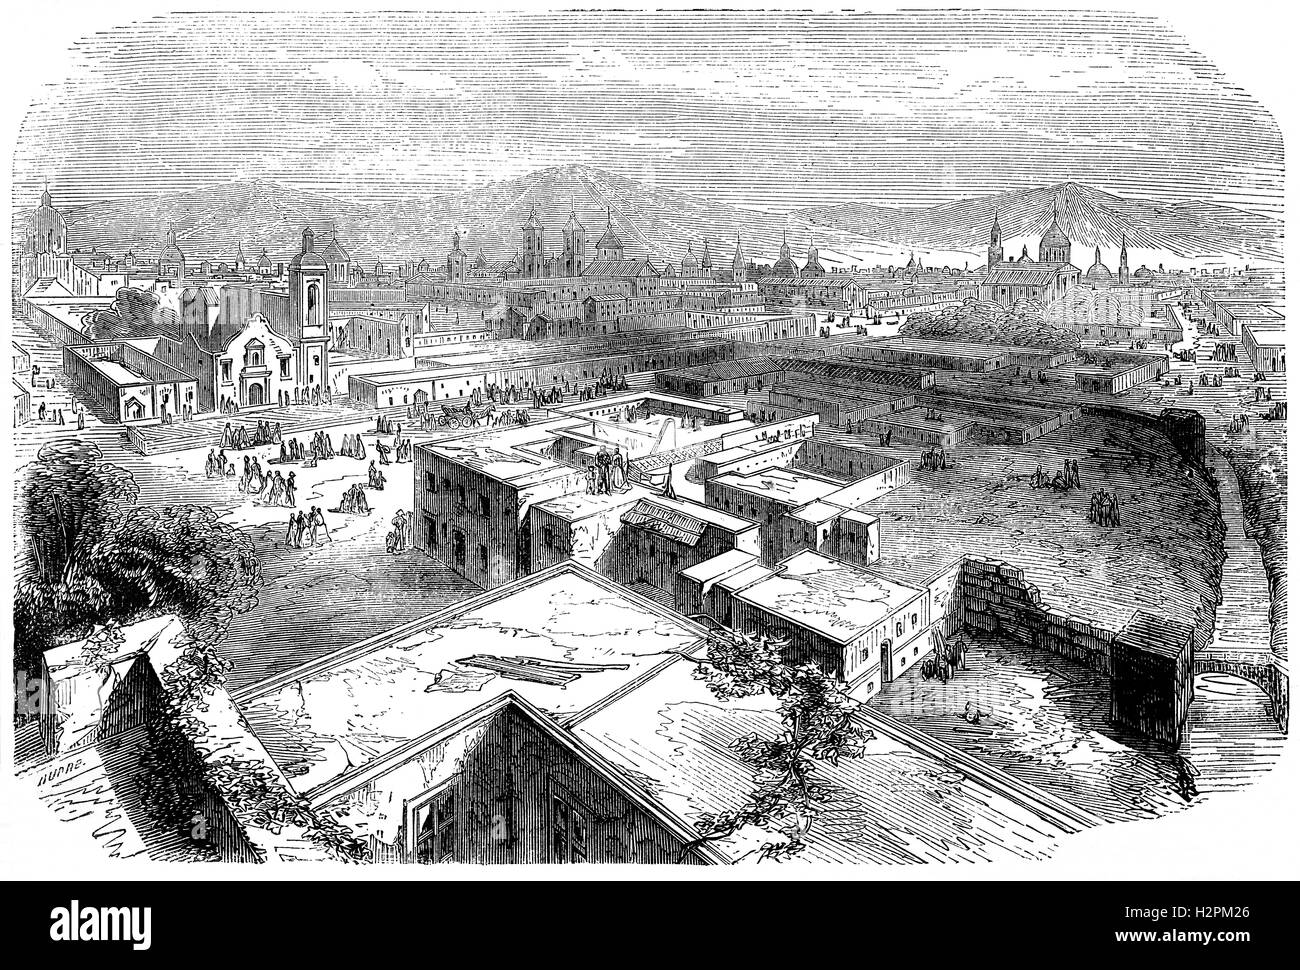 19th Century aerial view of Mexico City, or the City of Mexico, the capital and most populous city of the Americas - Stock Image